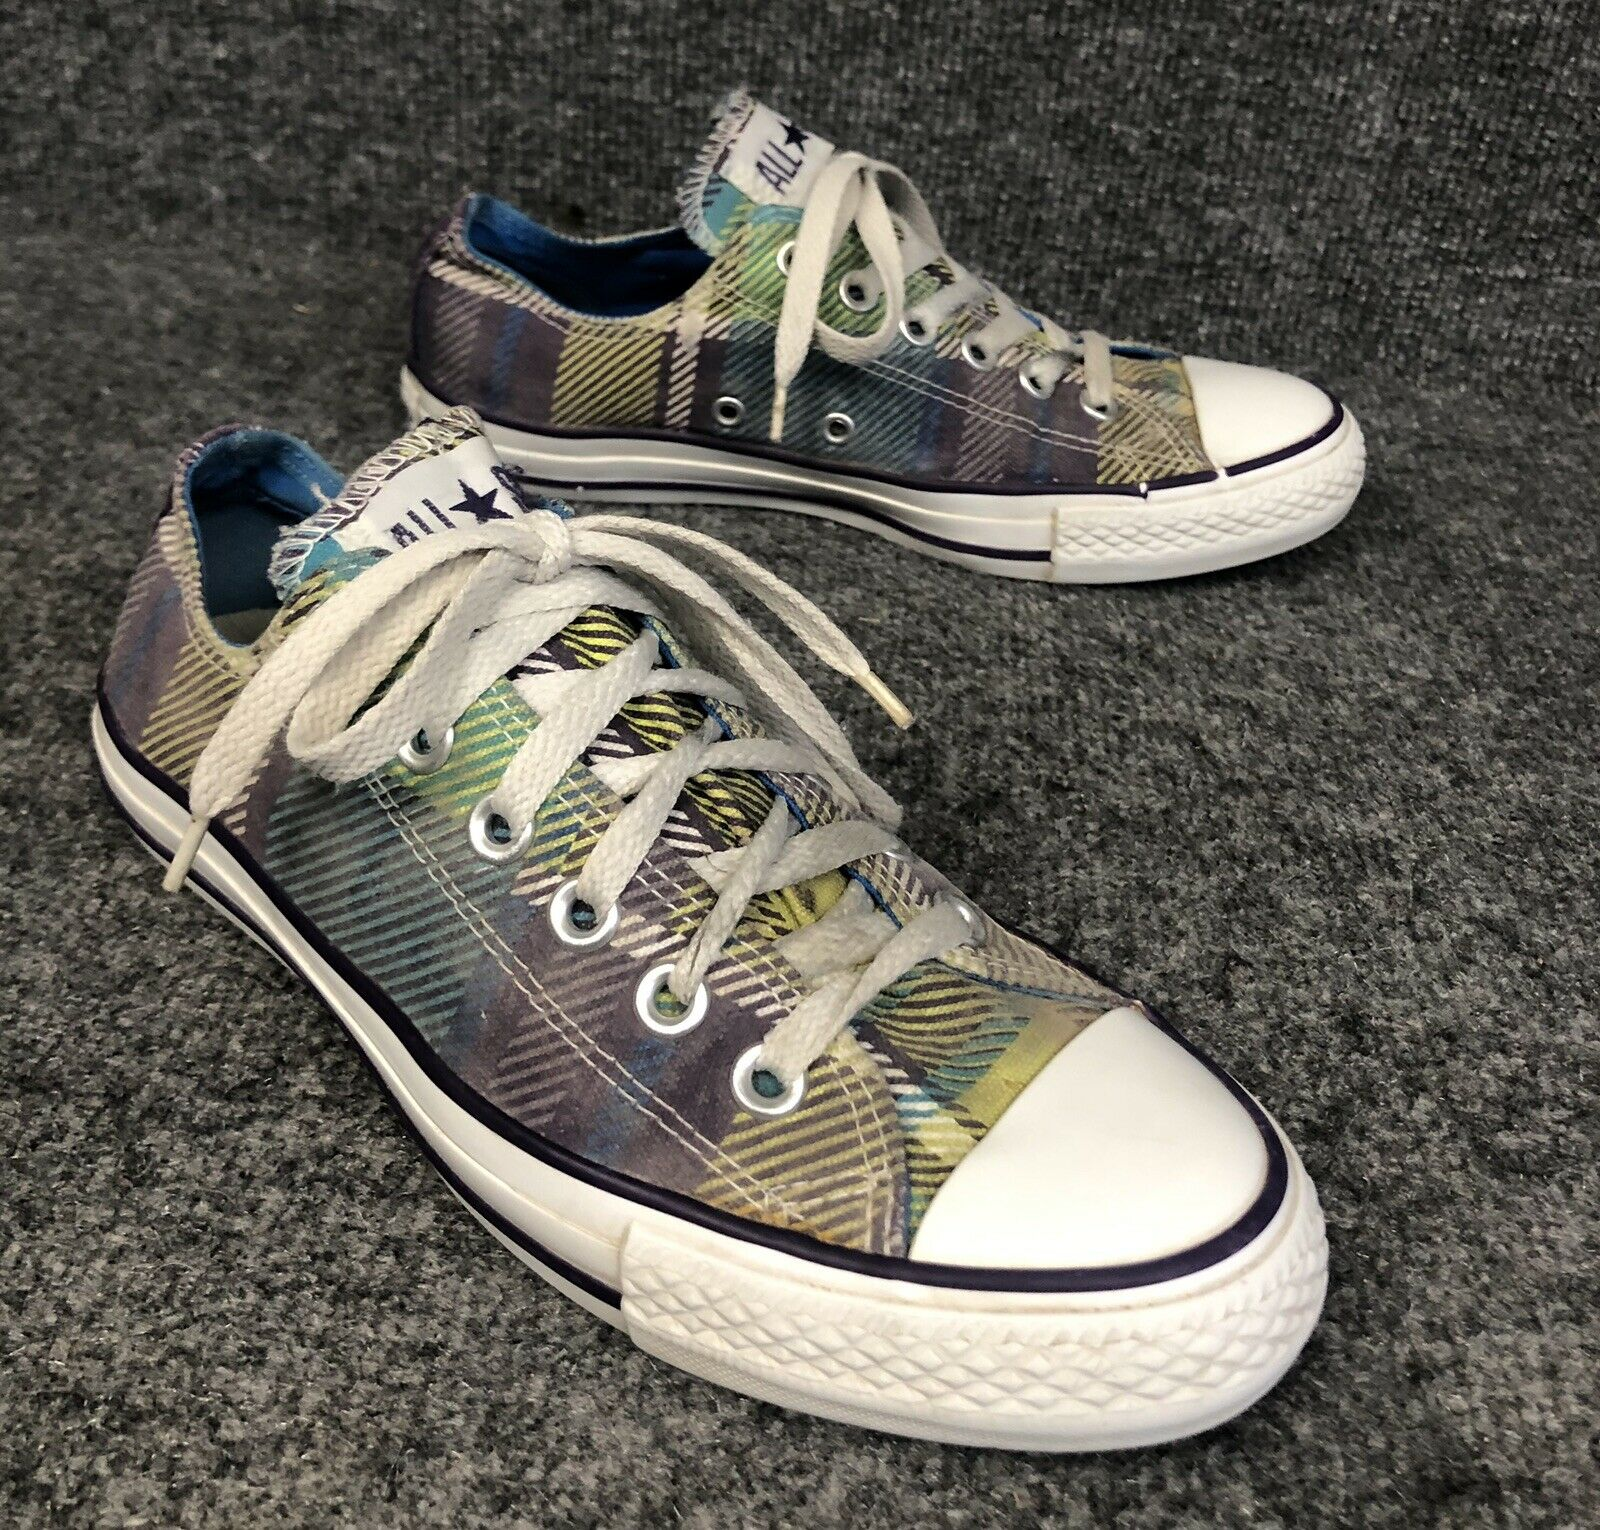 Converse All Star Low Top Plaid Sneakers shoes Womens Sz 7 Nice